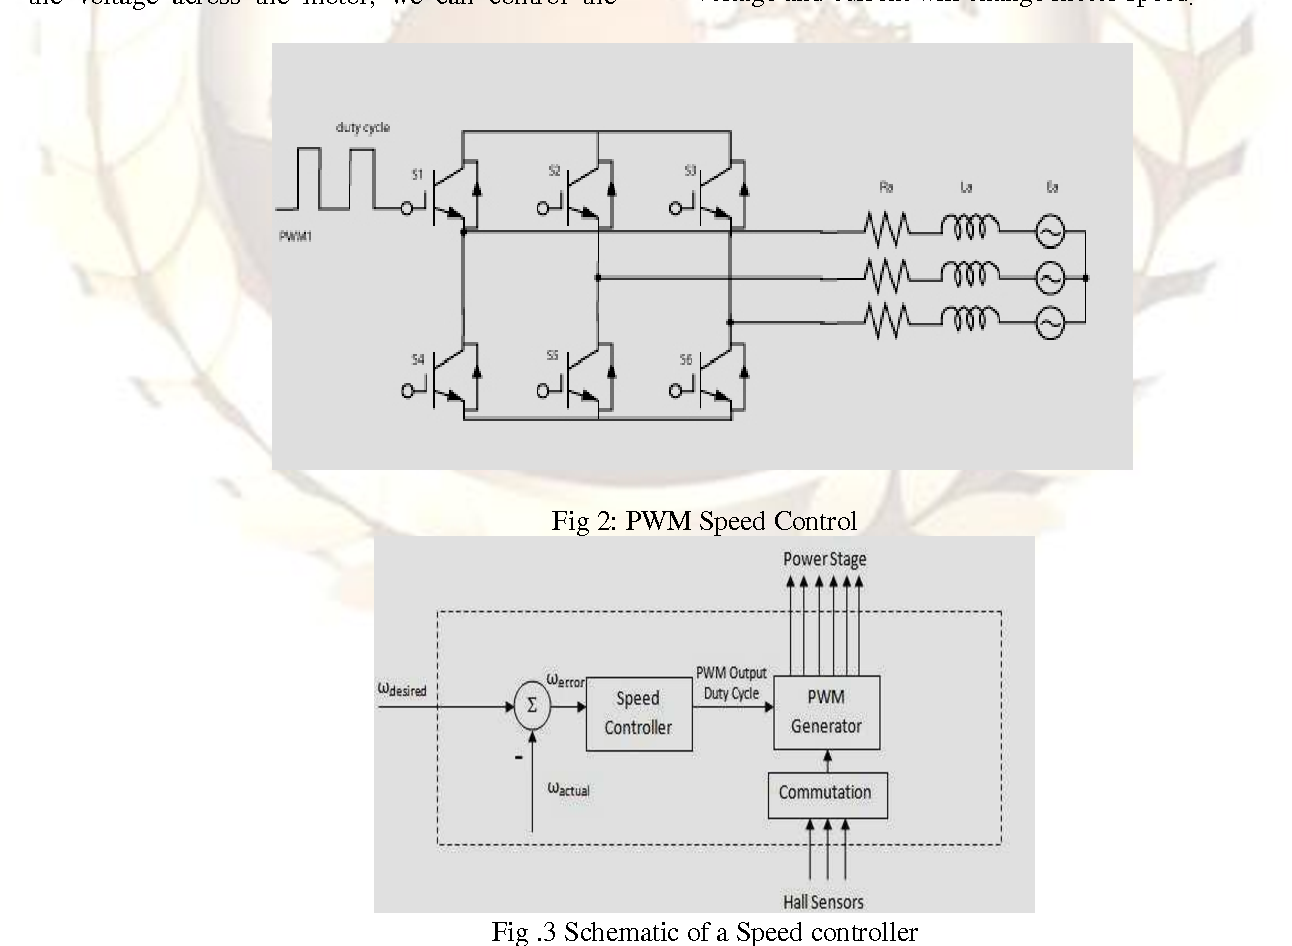 Modeling And Simulation Of Brushless Dc Motor Using Pwm Control Wiring Circuit Motorcontrol Controlcircuit Figure 2